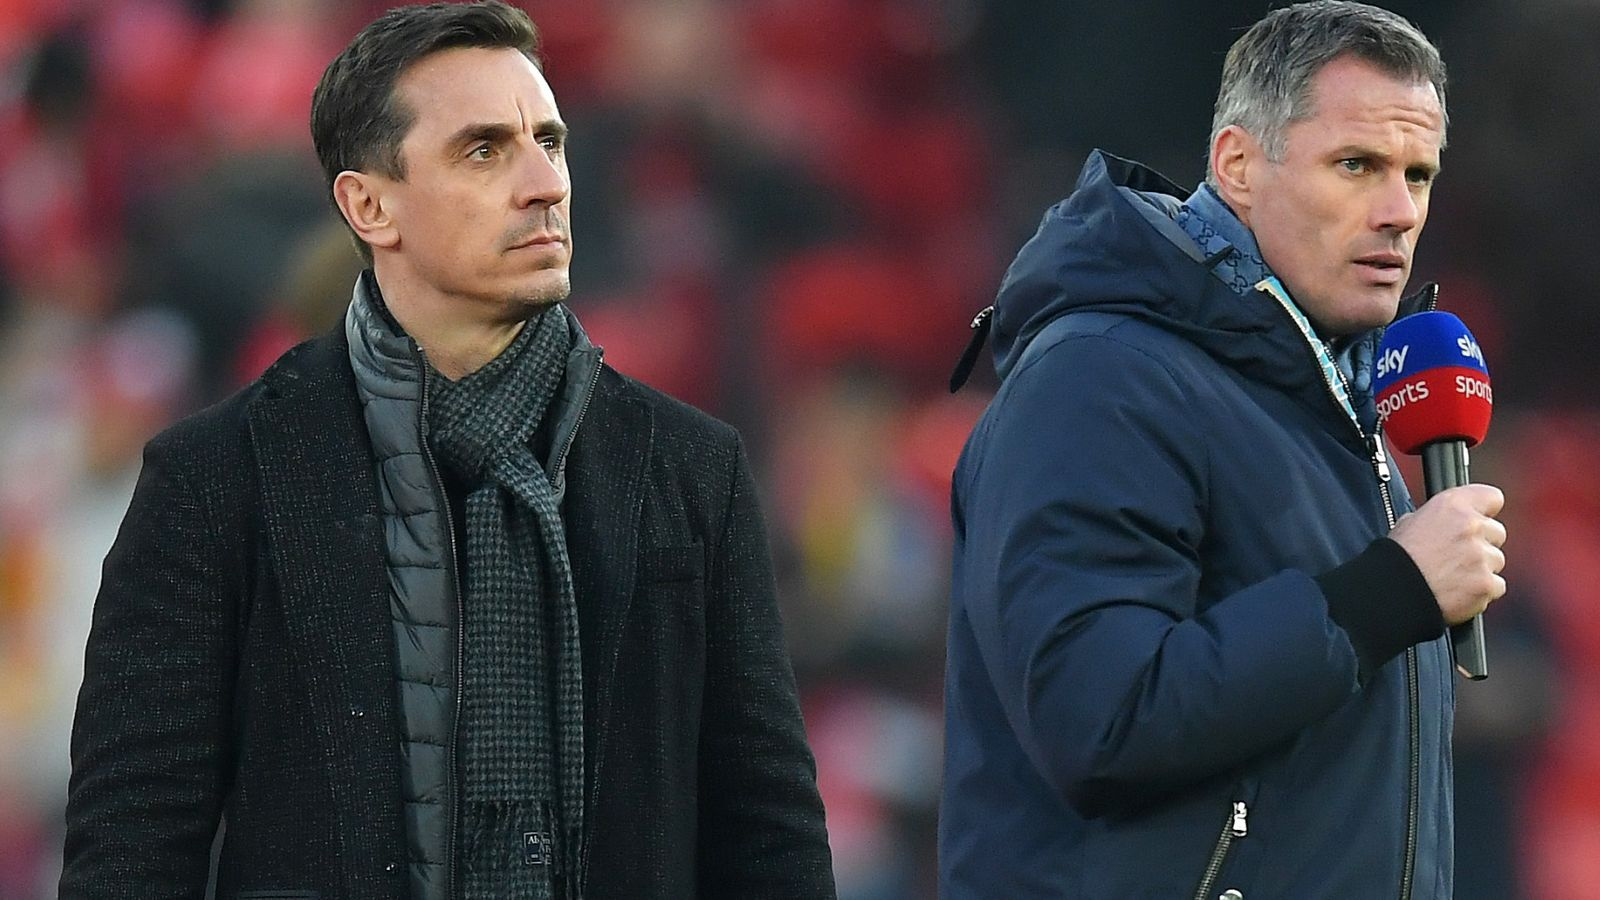 Gary Neville and Jamie Carragher rue 'football's missed opportunity' during coronavirus crisis